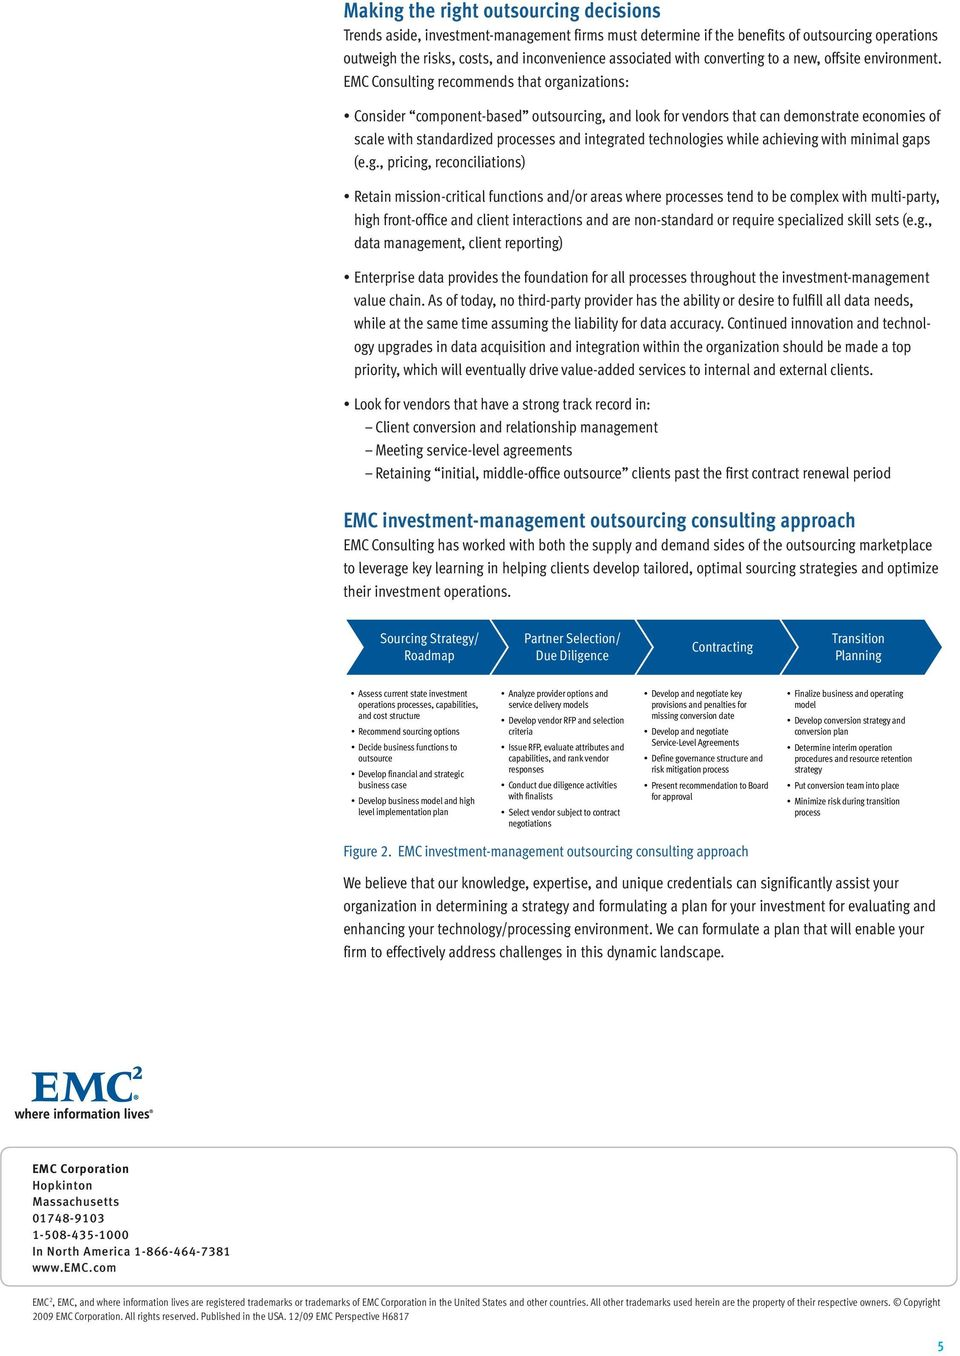 EMC Consulting recommends that organizations: Consider component-based outsourcing, and look for vendors that can demonstrate economies of scale with standardized processes and integrated